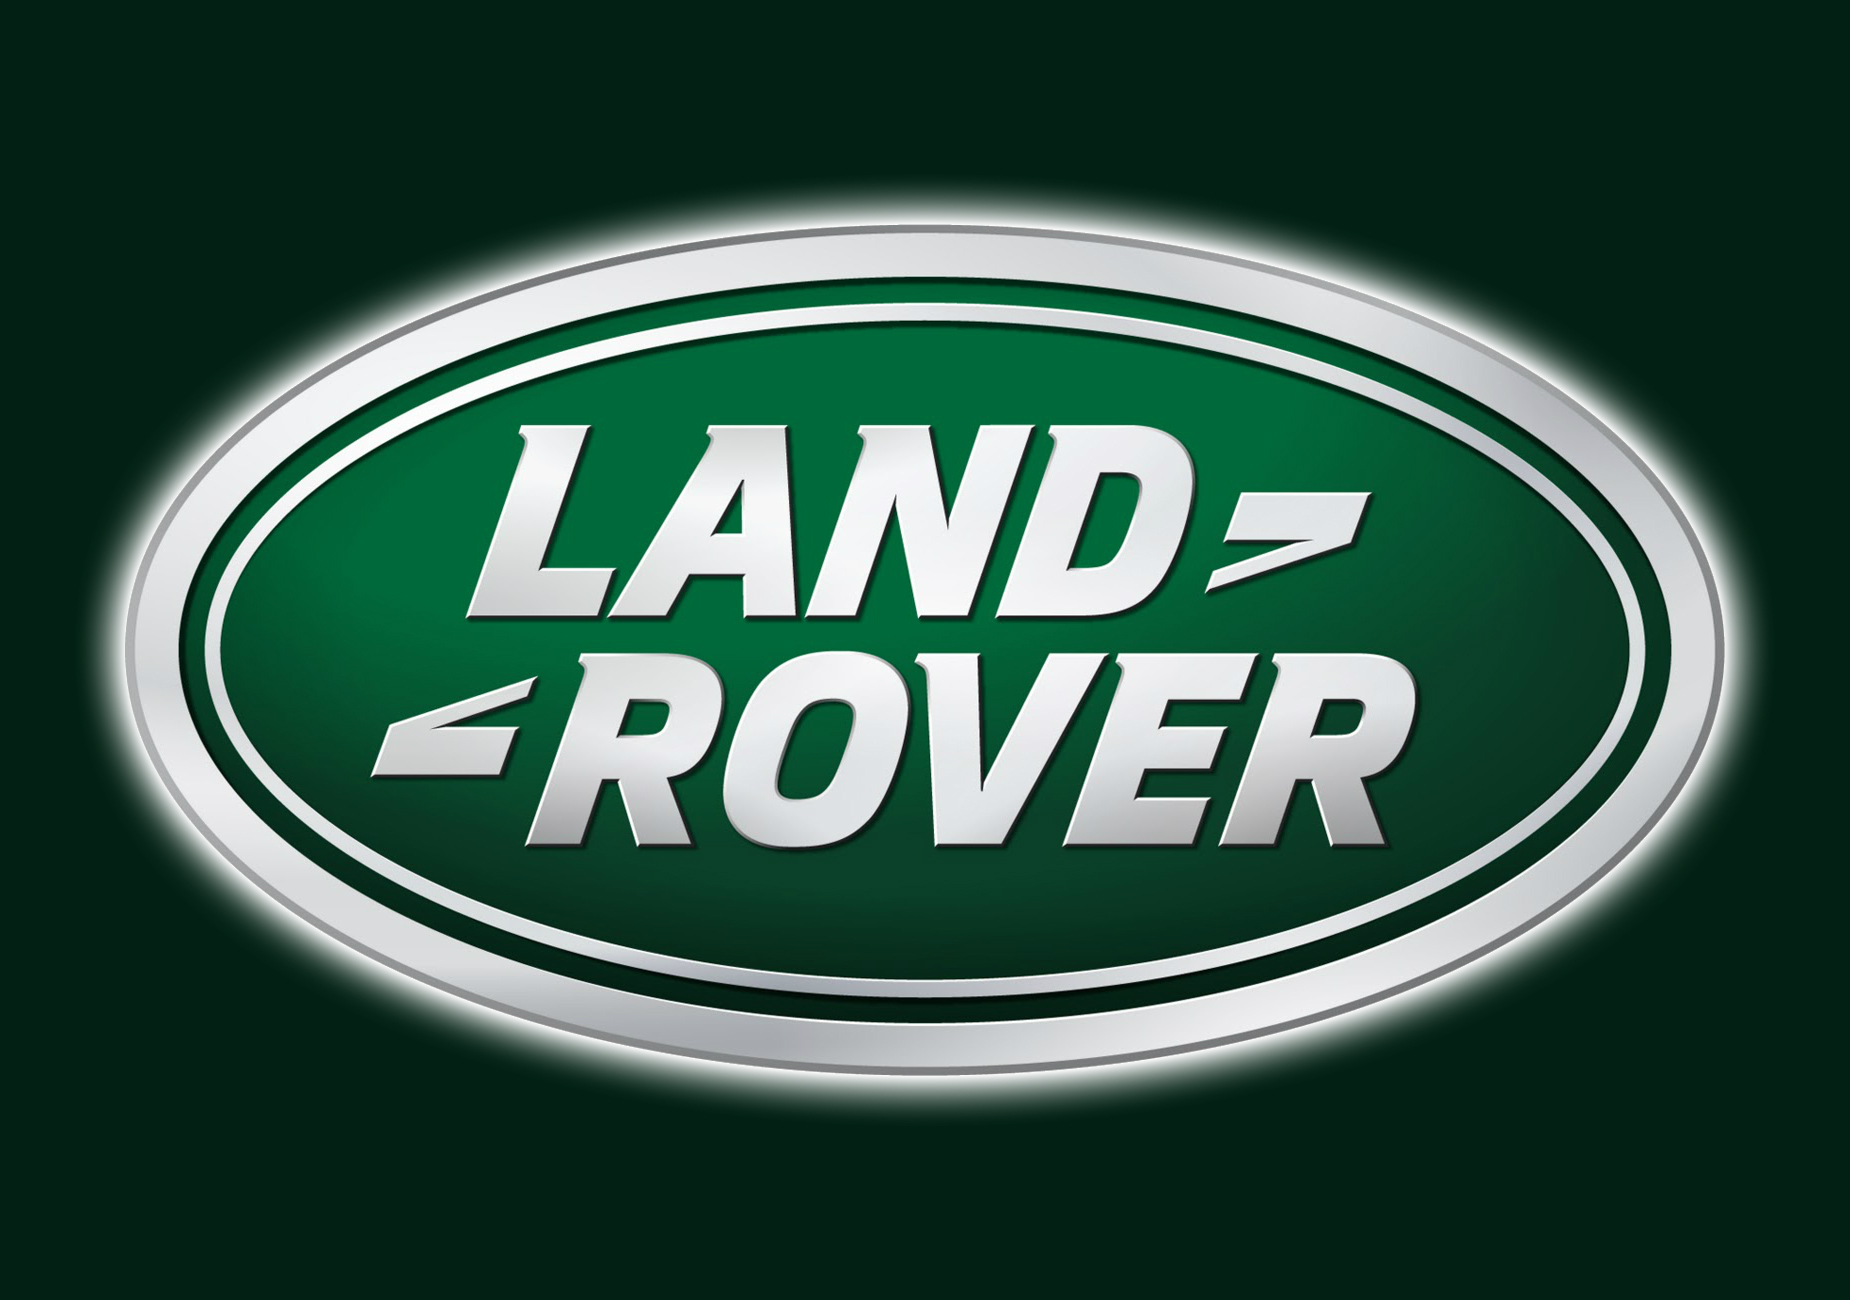 Land Rover Logo Meaning And History Land Rover Symbol